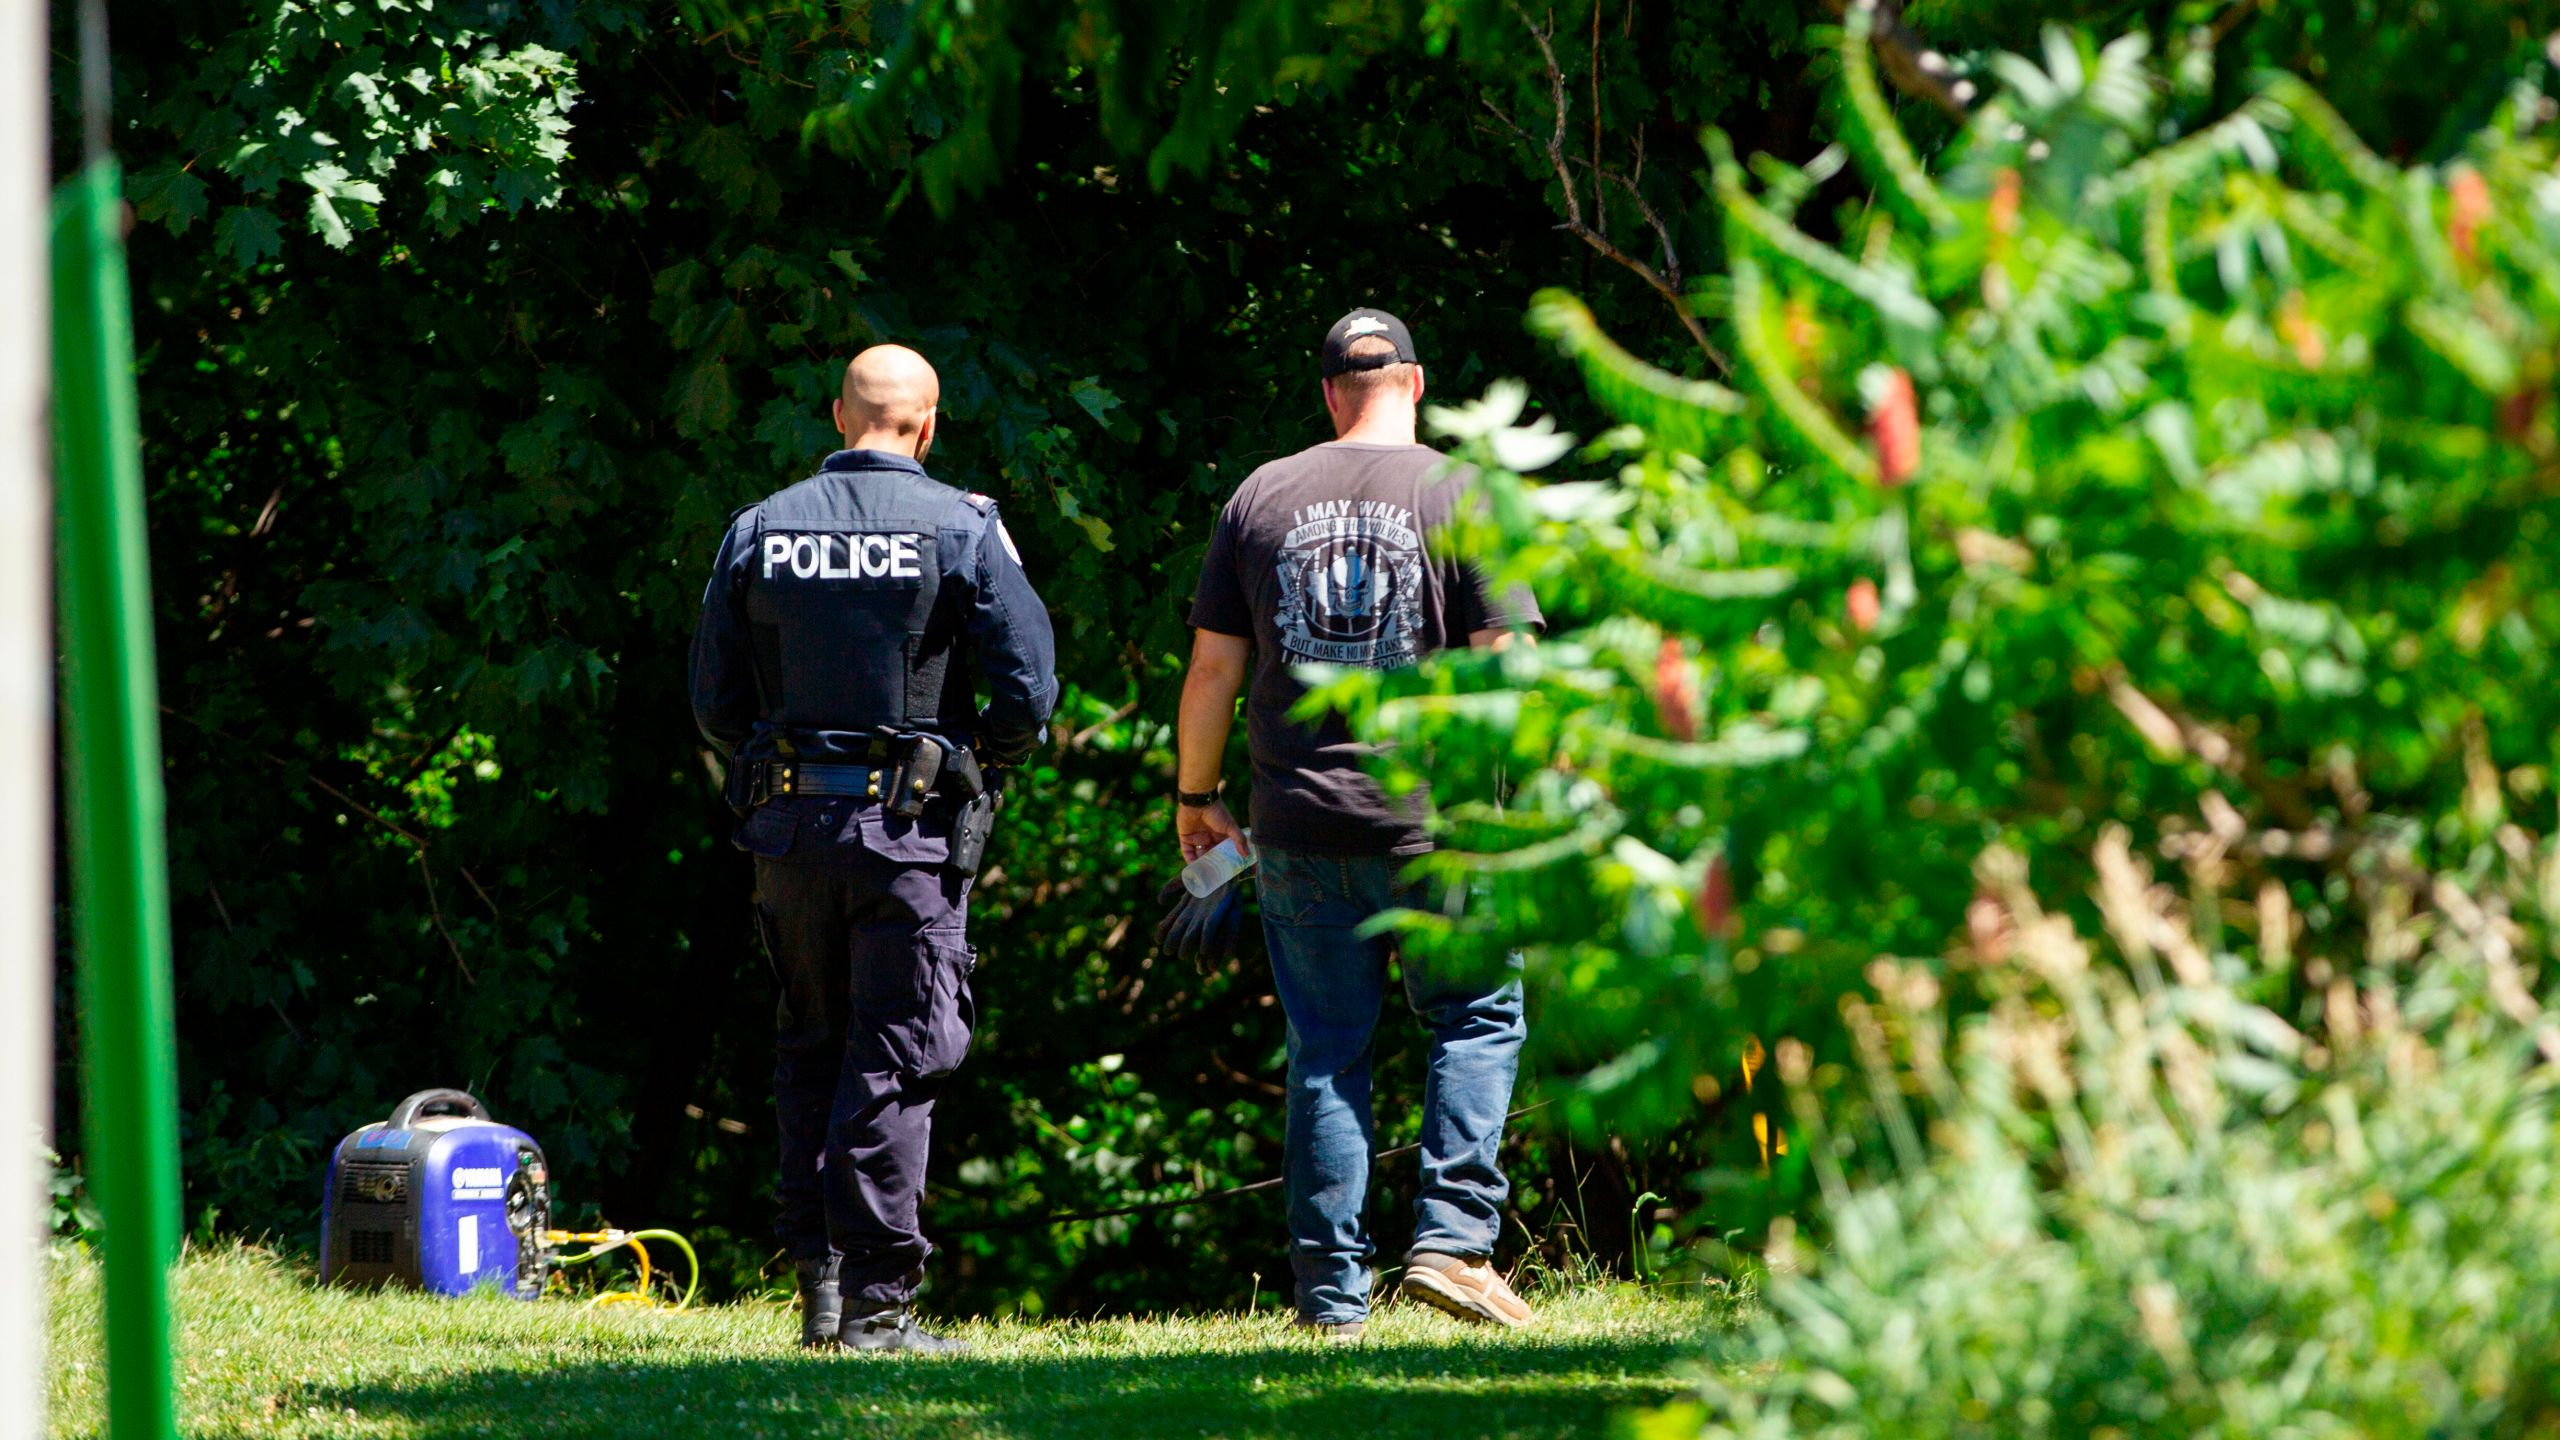 Investigators walk near a ravine behind a home on Mallory Crescent in Toronto, Ontario, July 6, 2018 where human remains were discovered in connection to the case of serial killer Bruce McArthur. (Credit: GEOFF ROBINS/AFP/Getty Images)